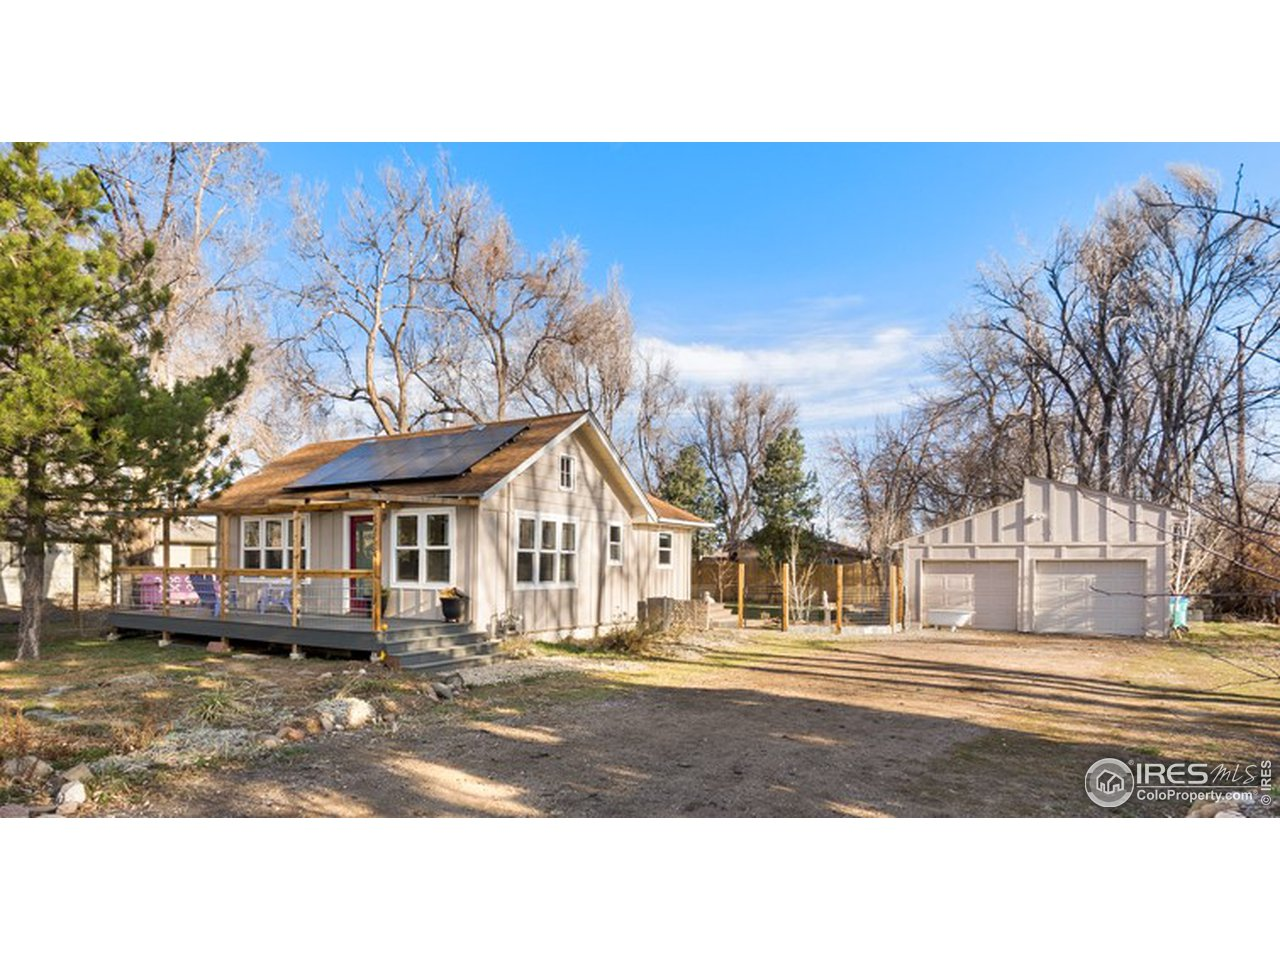 2208 Laporte Ave, Fort Collins CO 80521